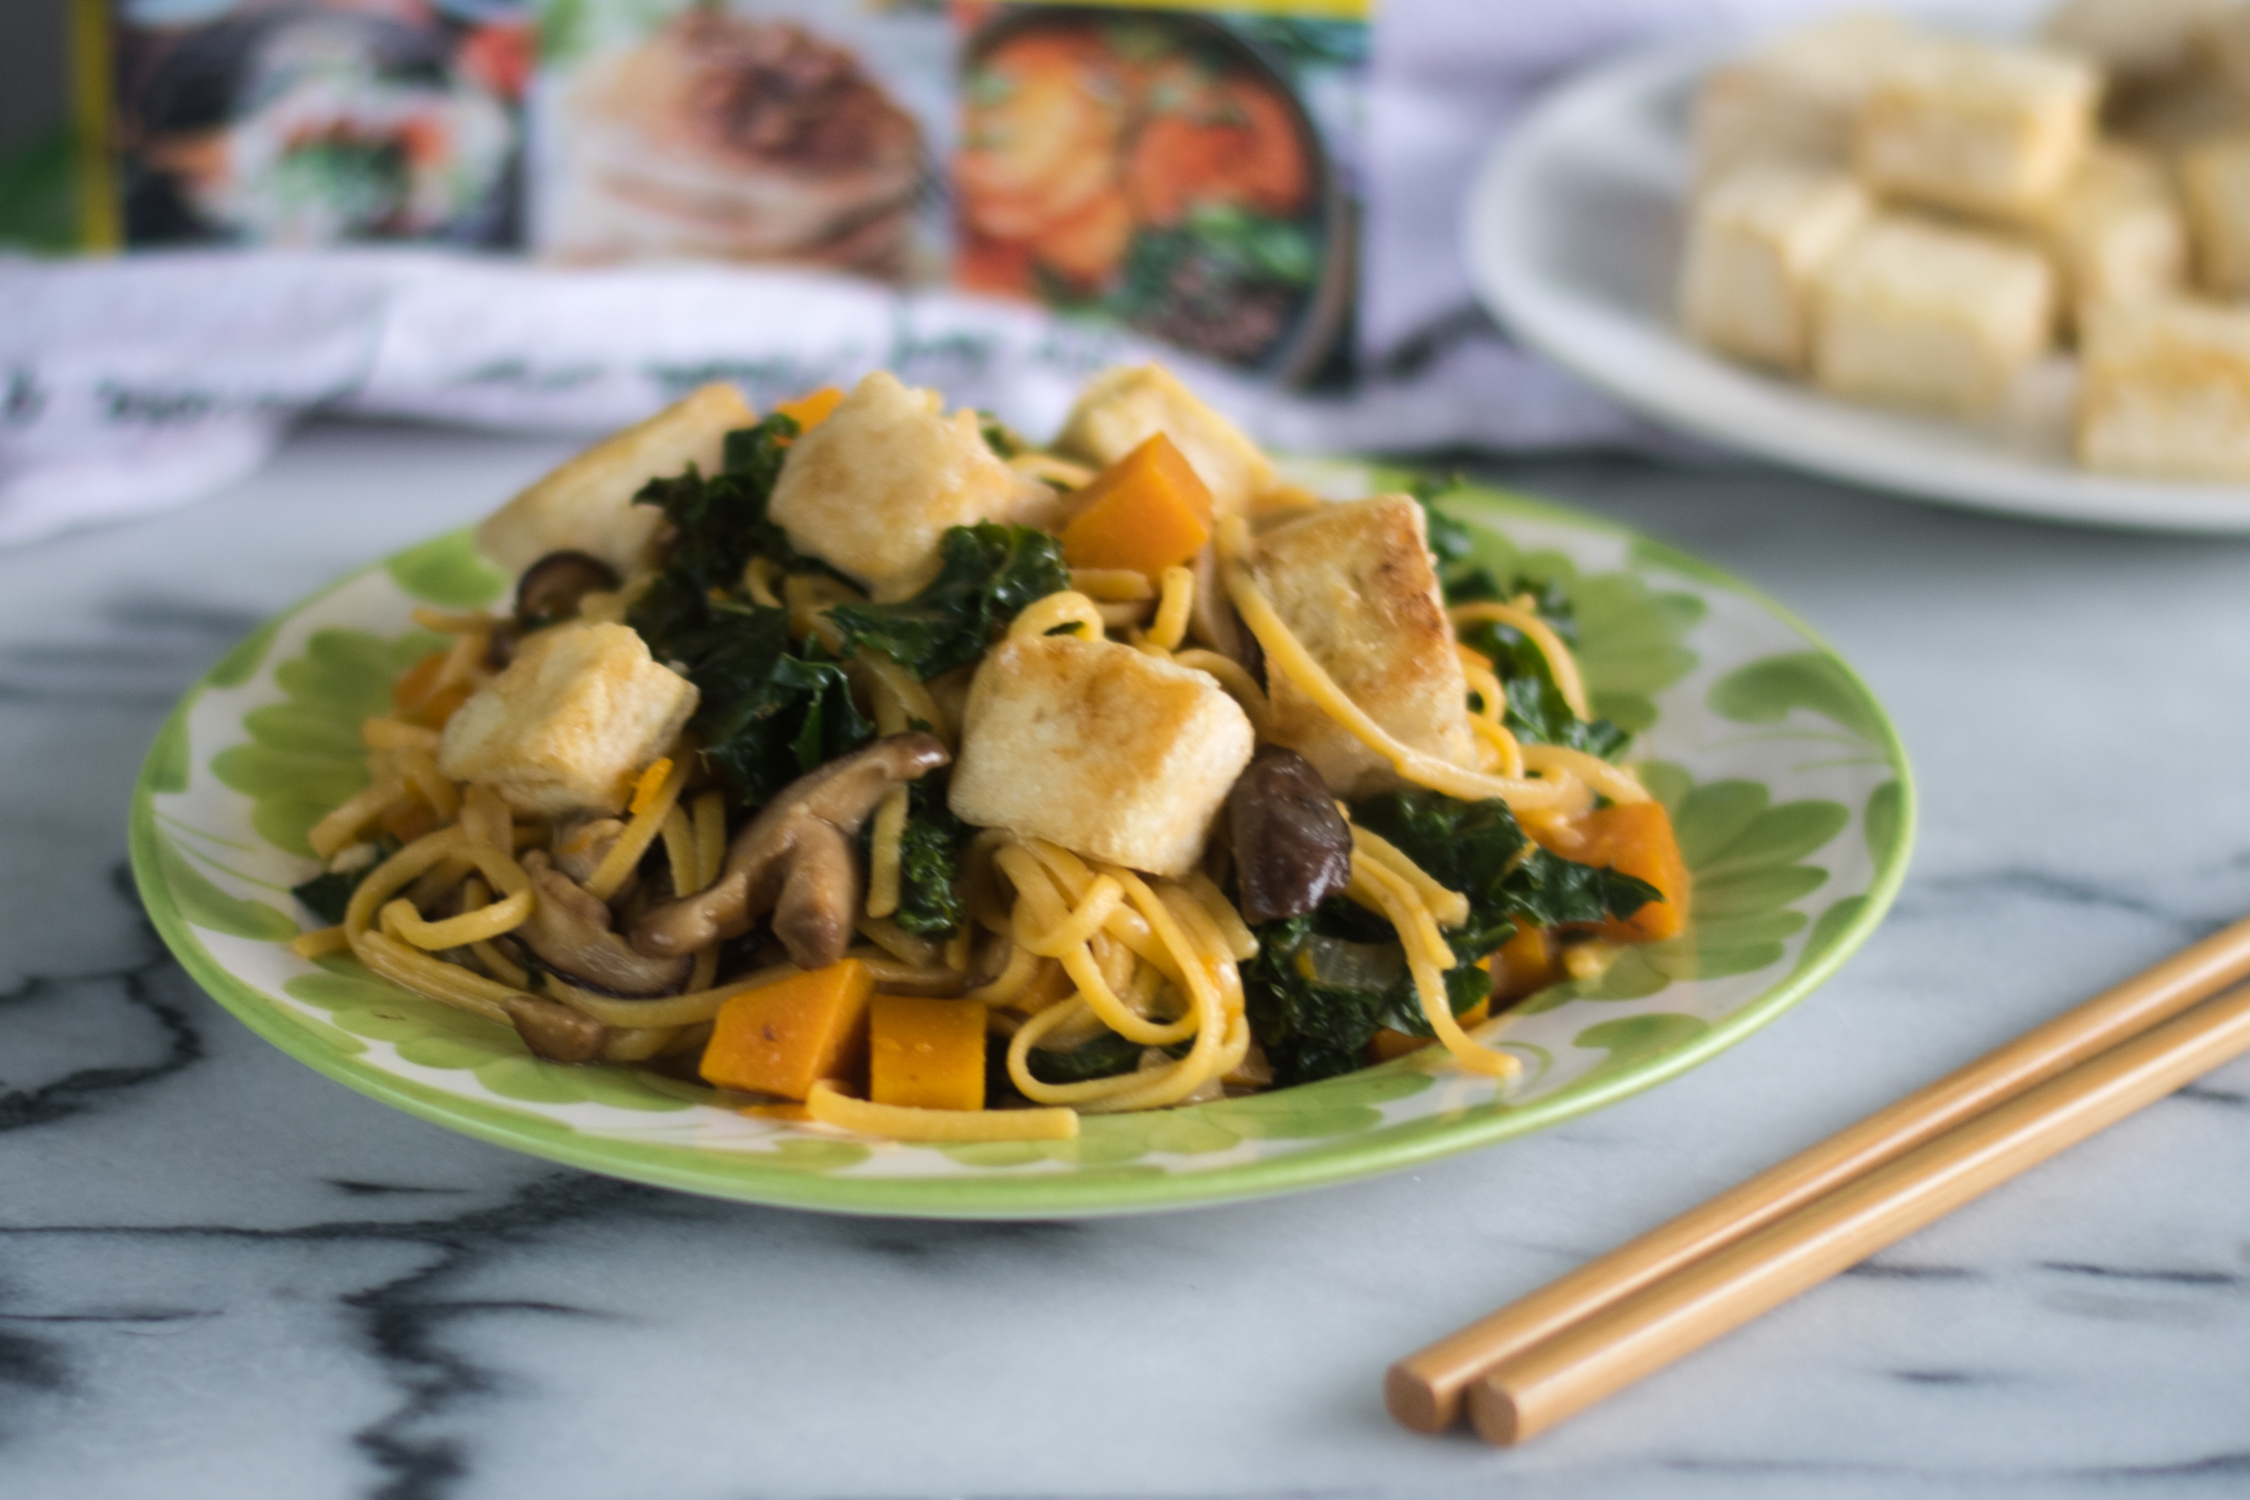 This Butternut Squash and Kale Lo Mein with Crispy Tofu from The Ultimate Vegan Cookbook is healthy and delicious vegan entree recipe!